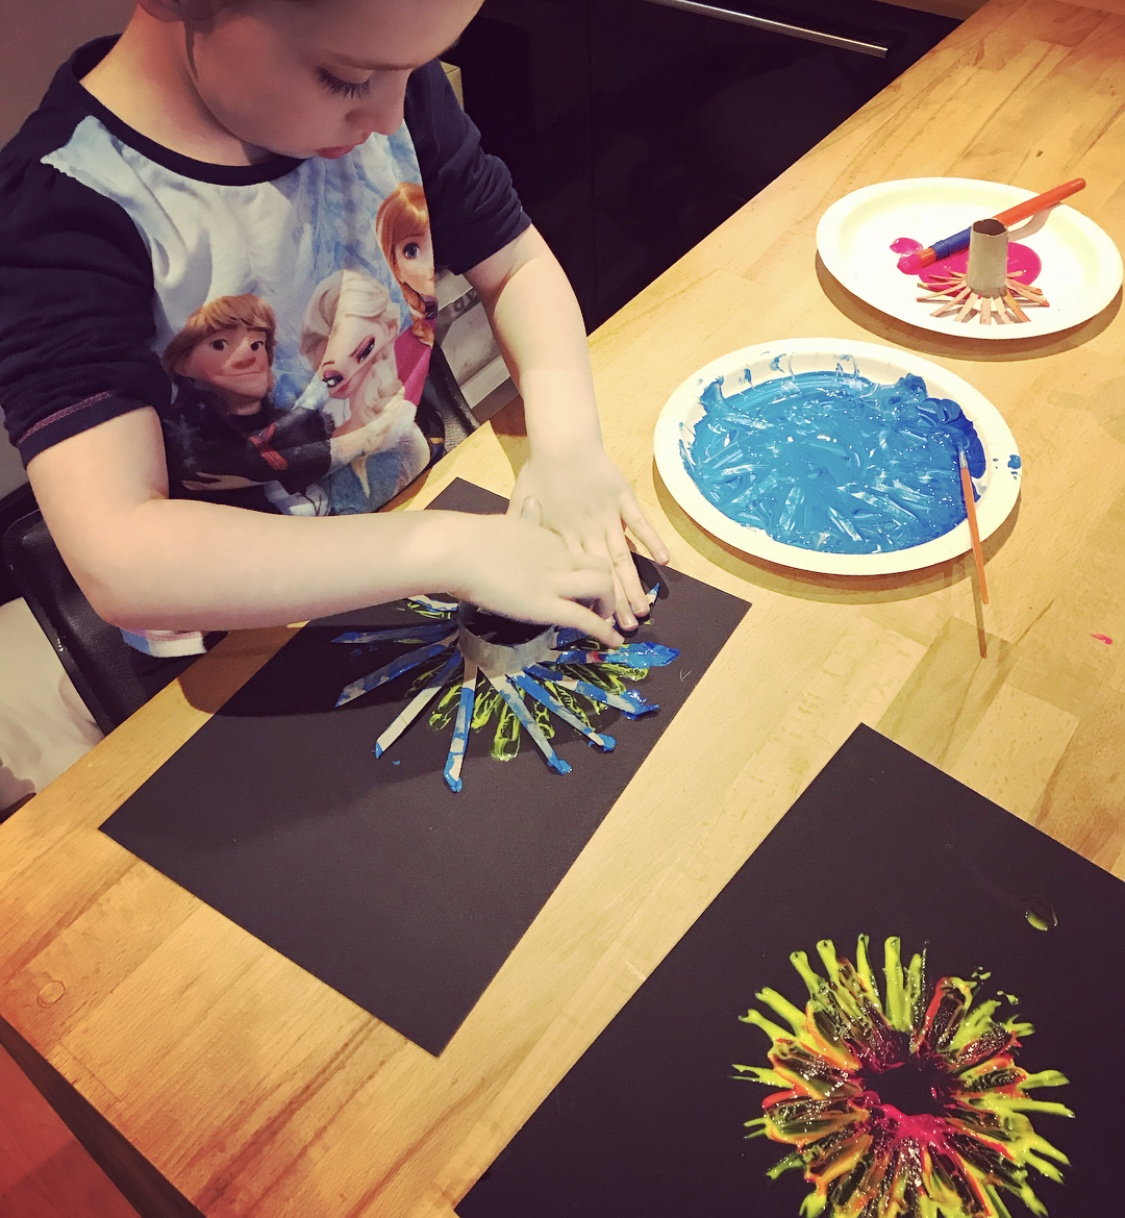 free ideas for Summer fun - painting with toilet roll tubes